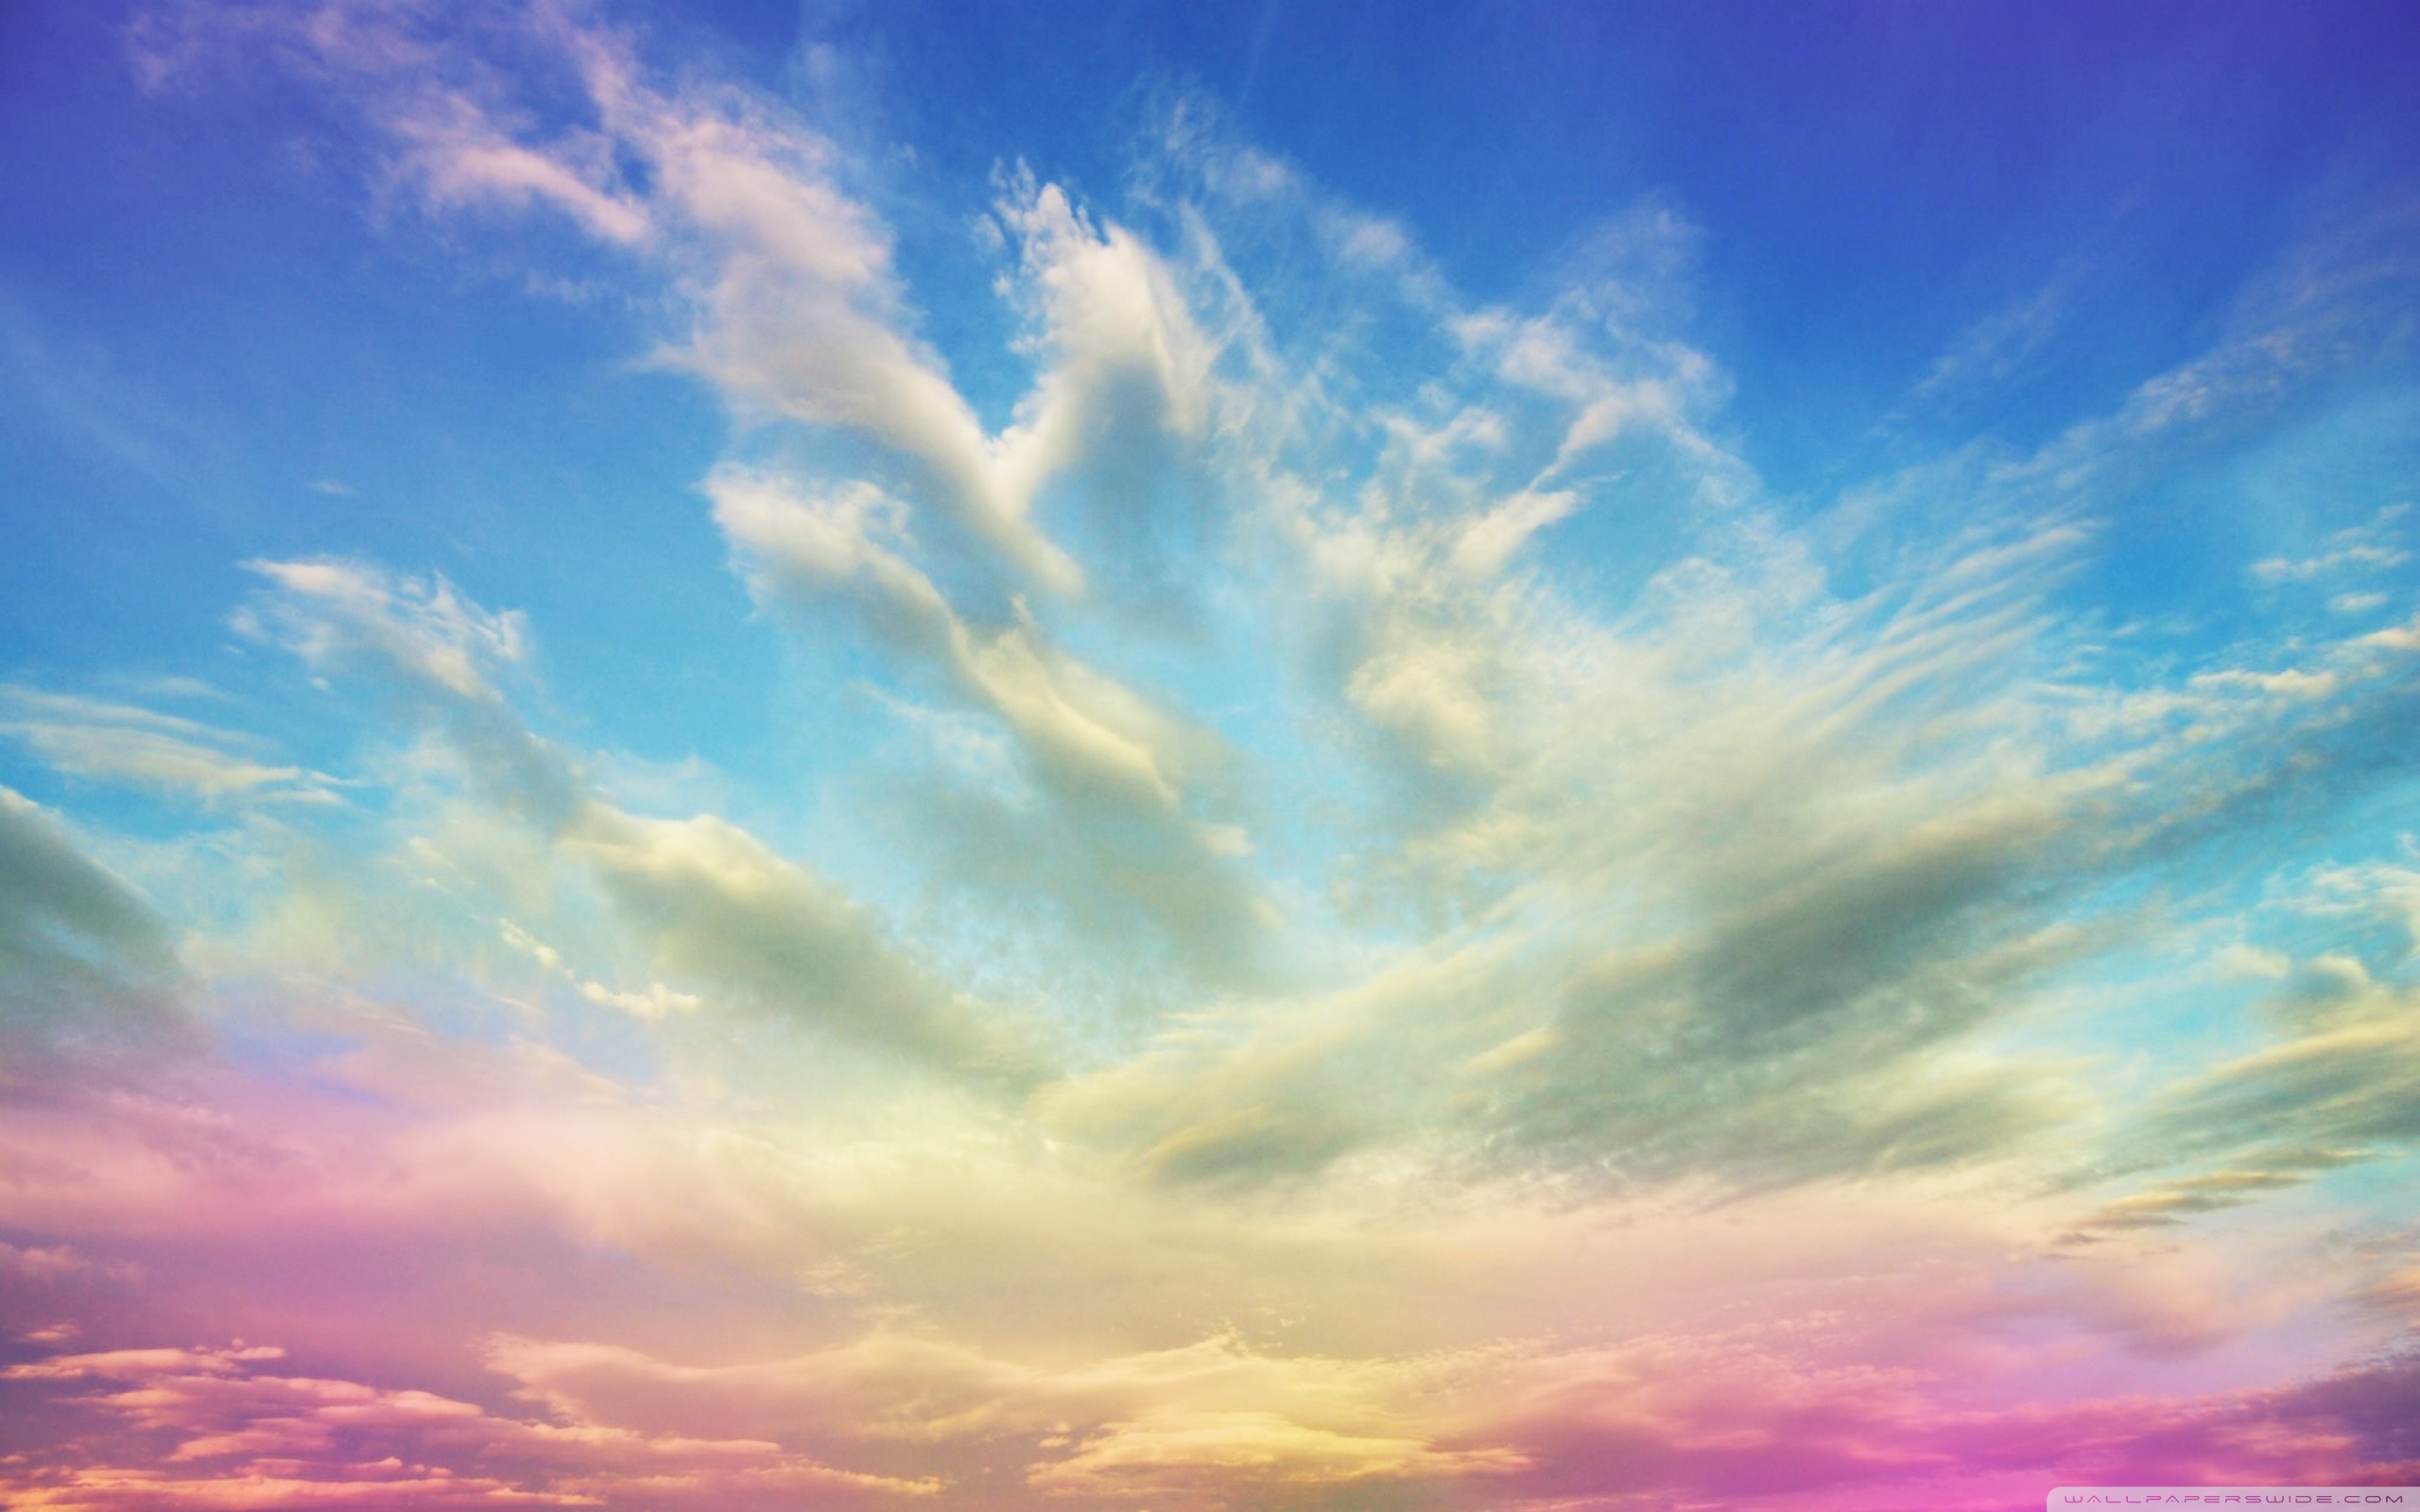 Download Free WallpaperPink Clouds